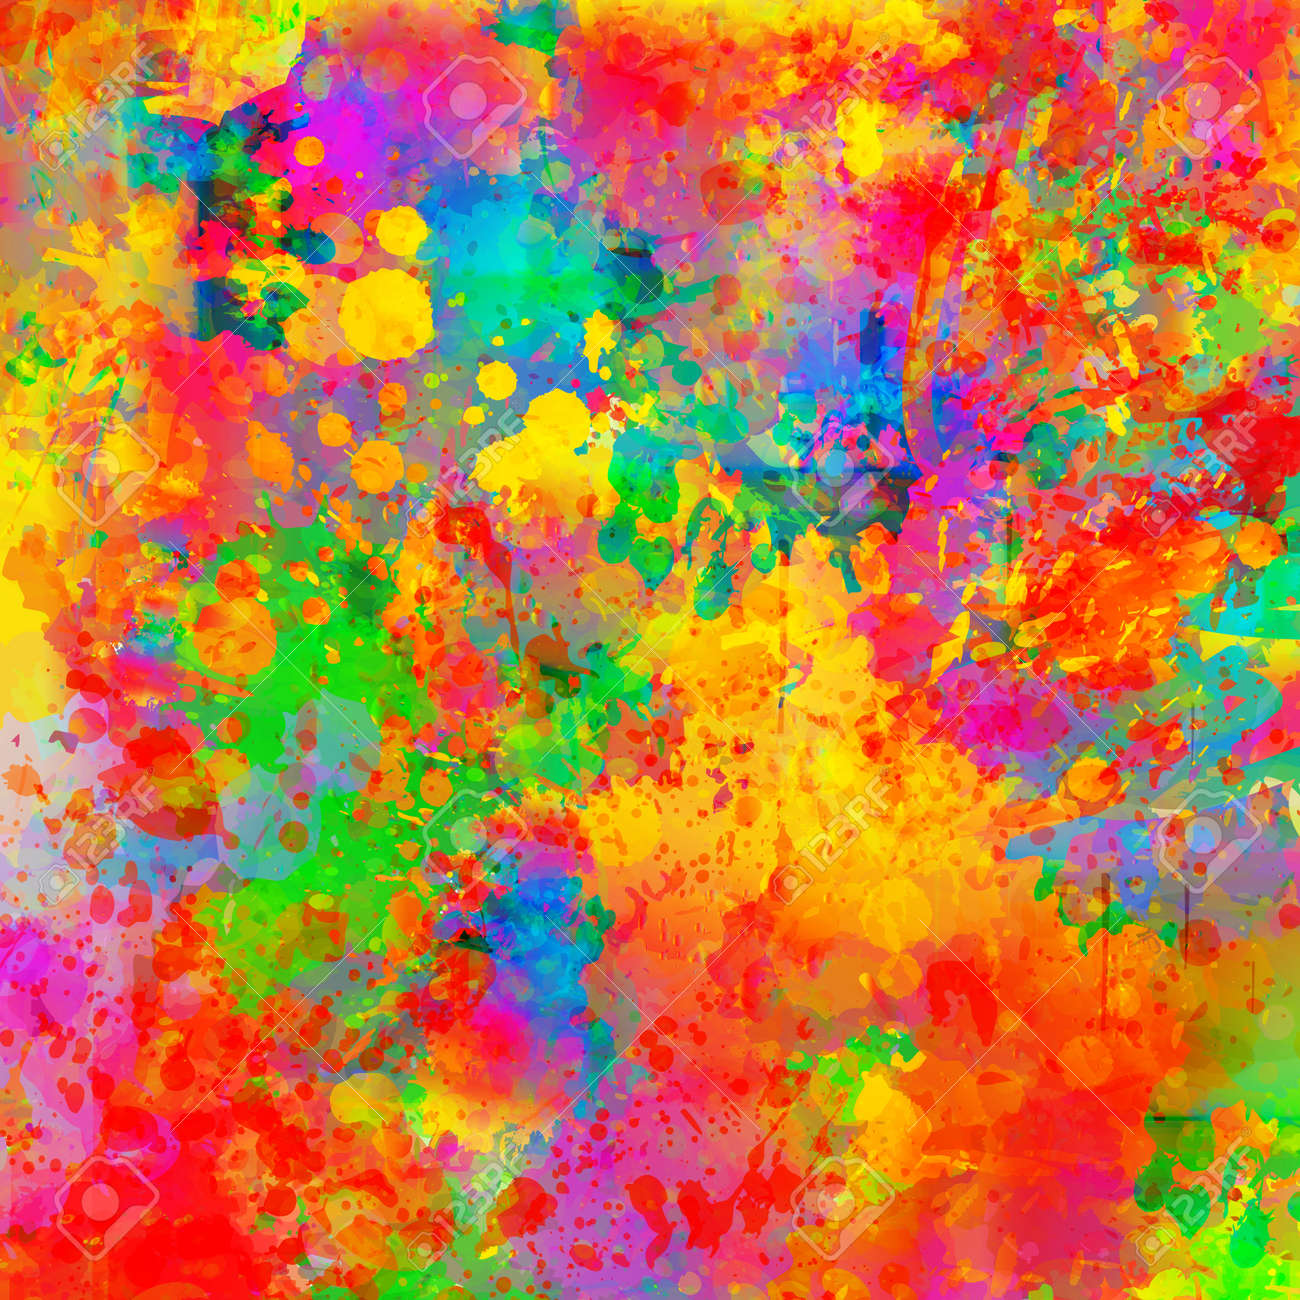 Abstract color splash background - 59434543